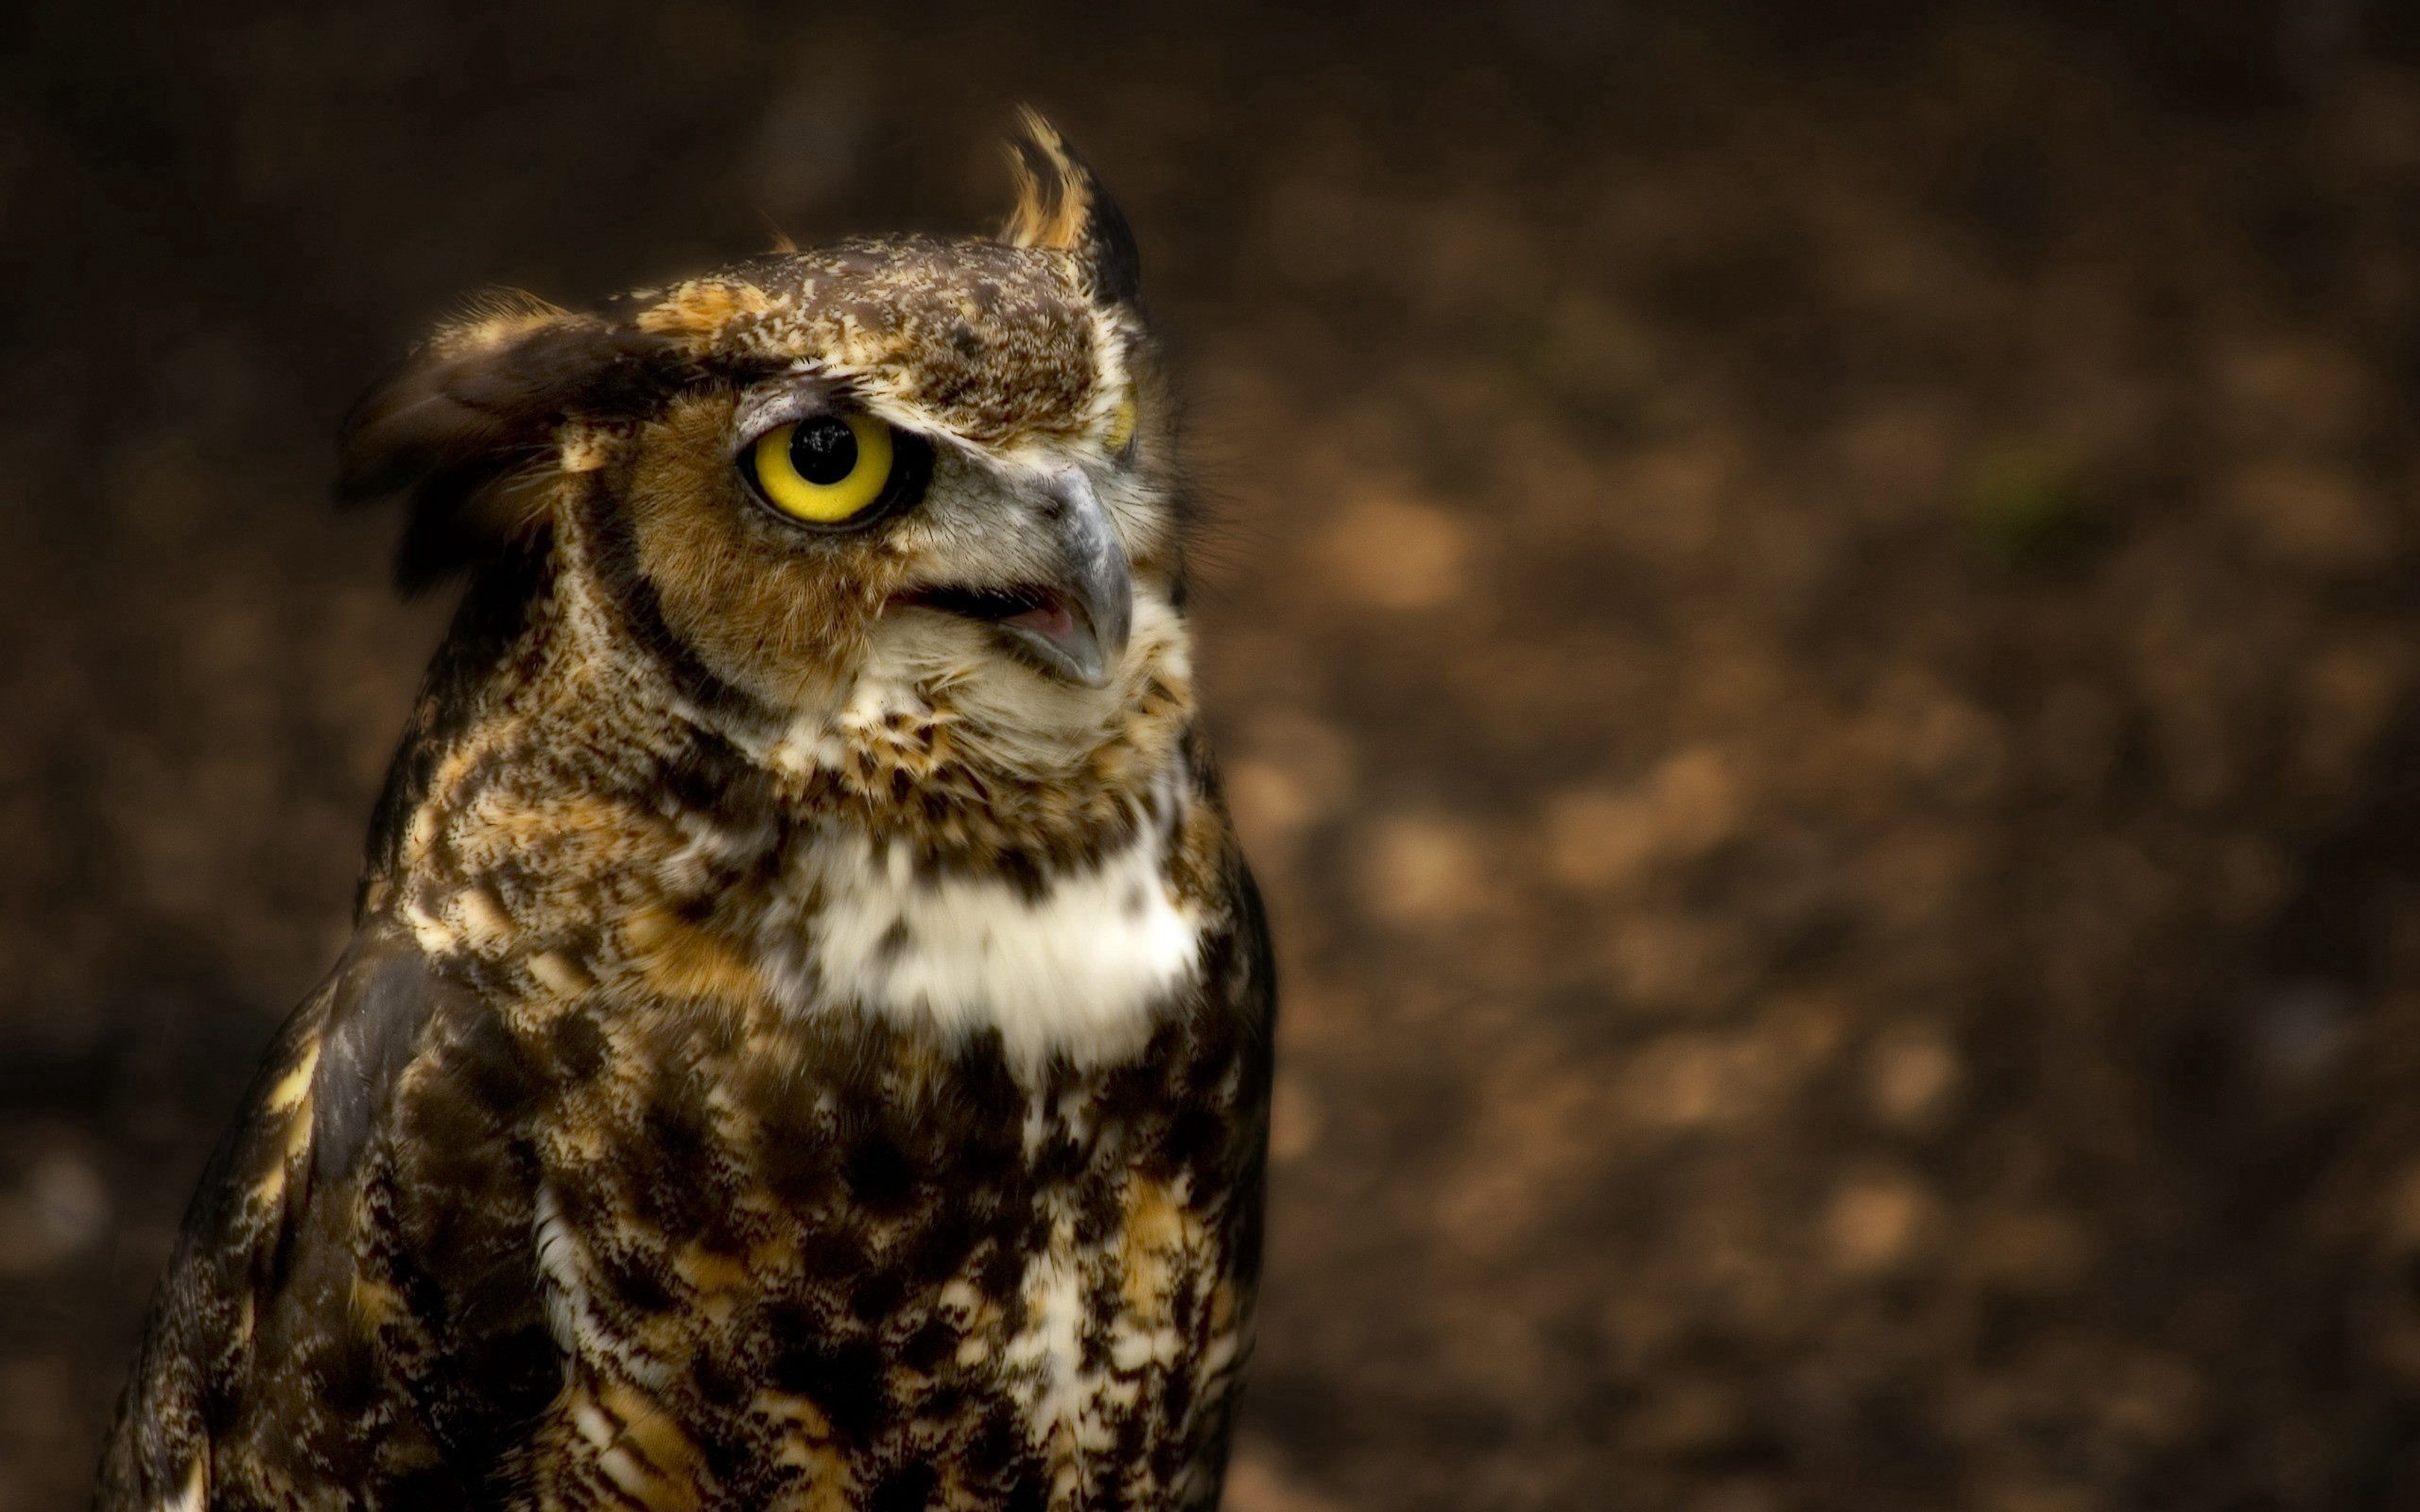 56578 download wallpaper Animals, Owl, Head, Glare, Hunting, Hunt, Eyes screensavers and pictures for free